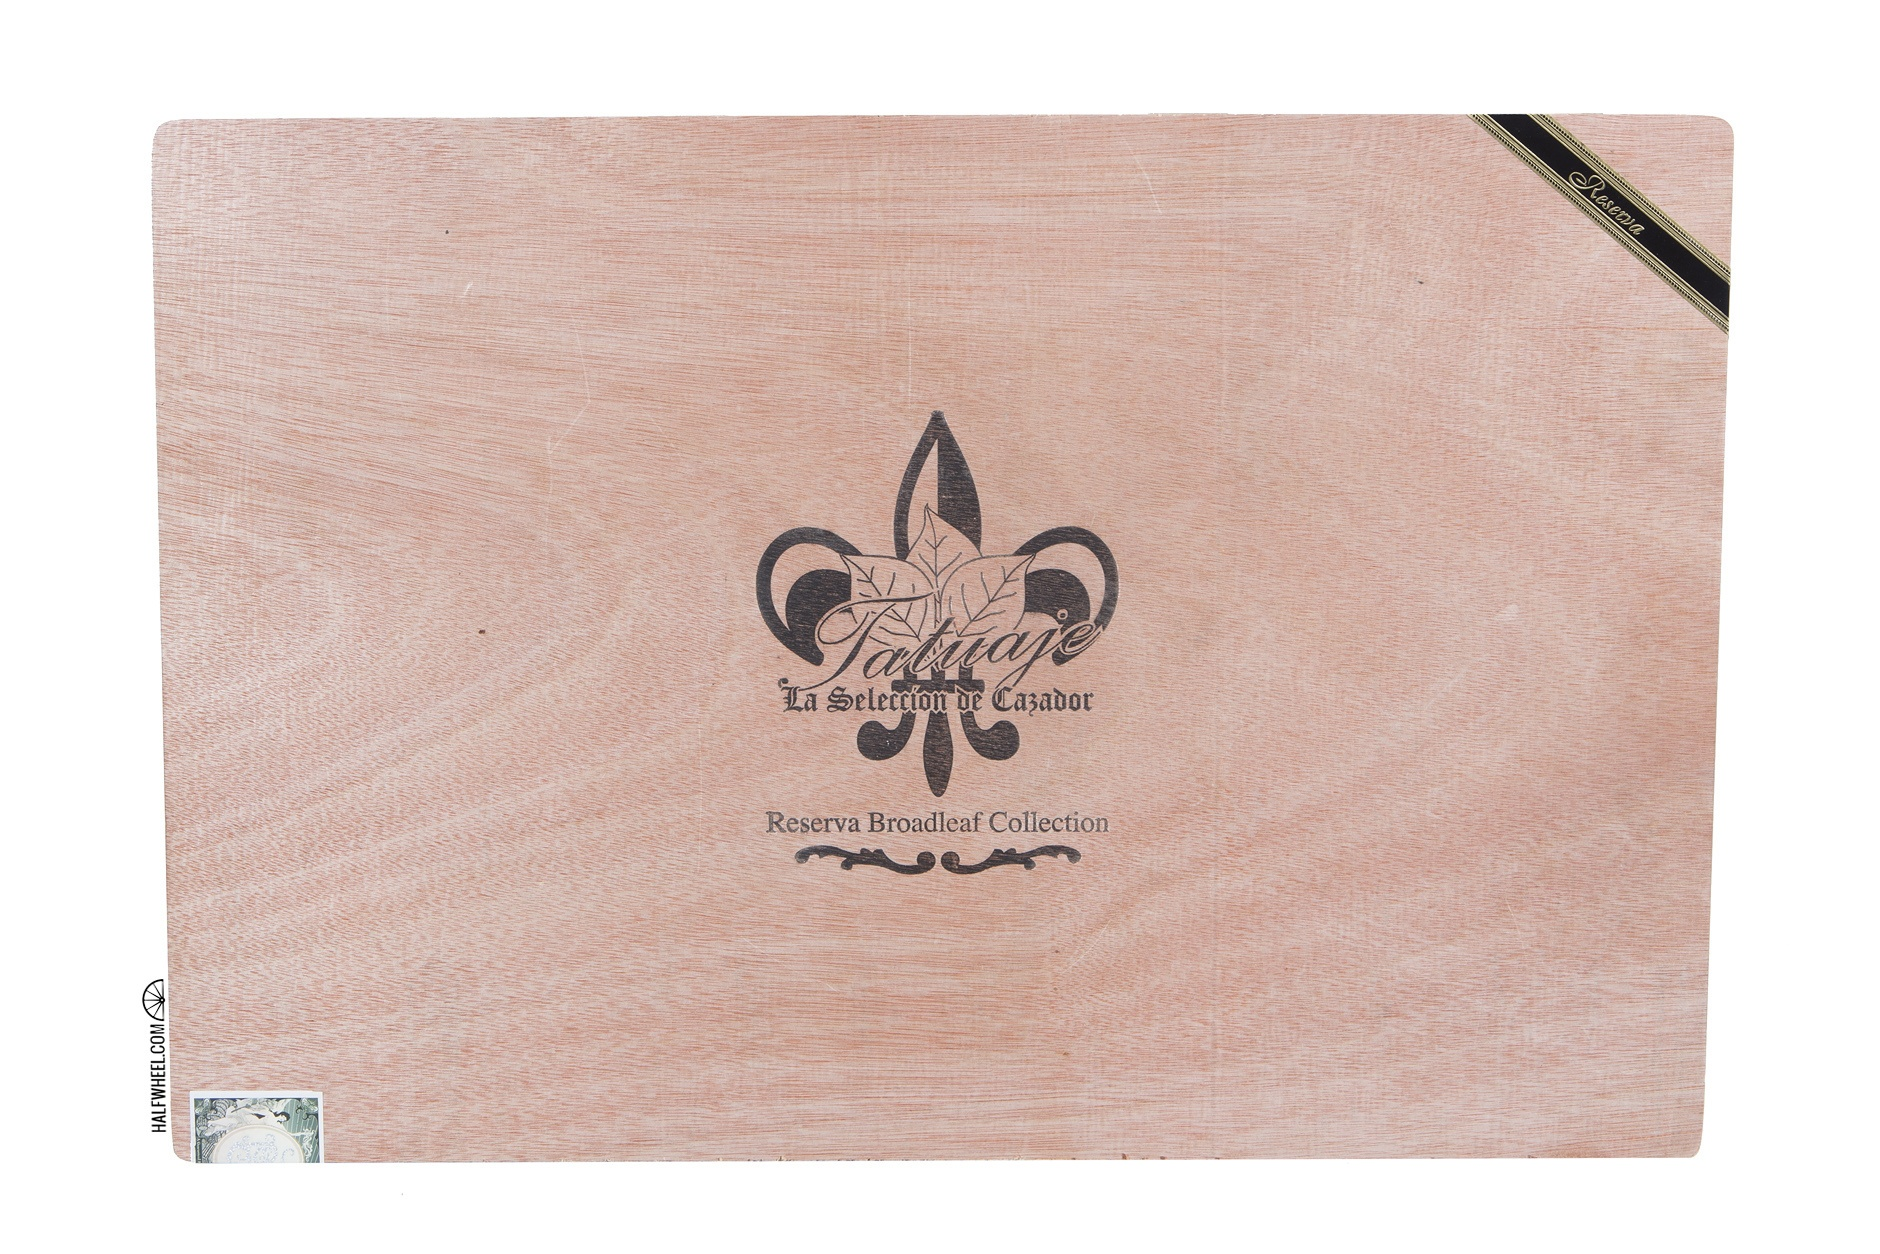 Tatuaje Reserva Broadleaf Collection Box 1